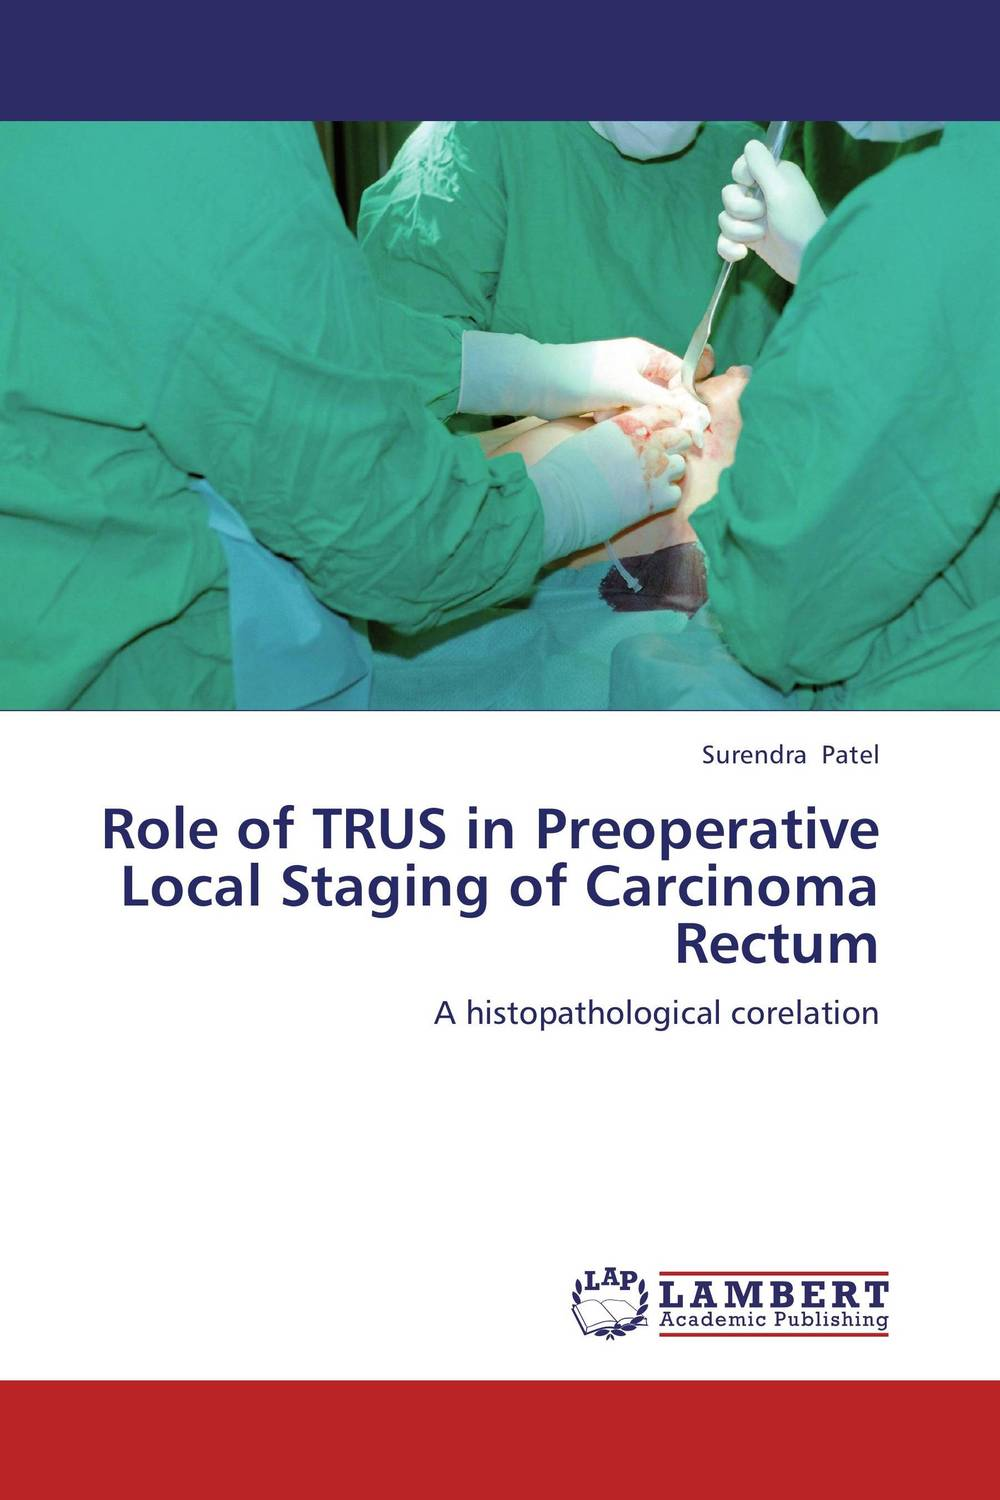 Role of TRUS in Preoperative Local Staging of Carcinoma Rectum